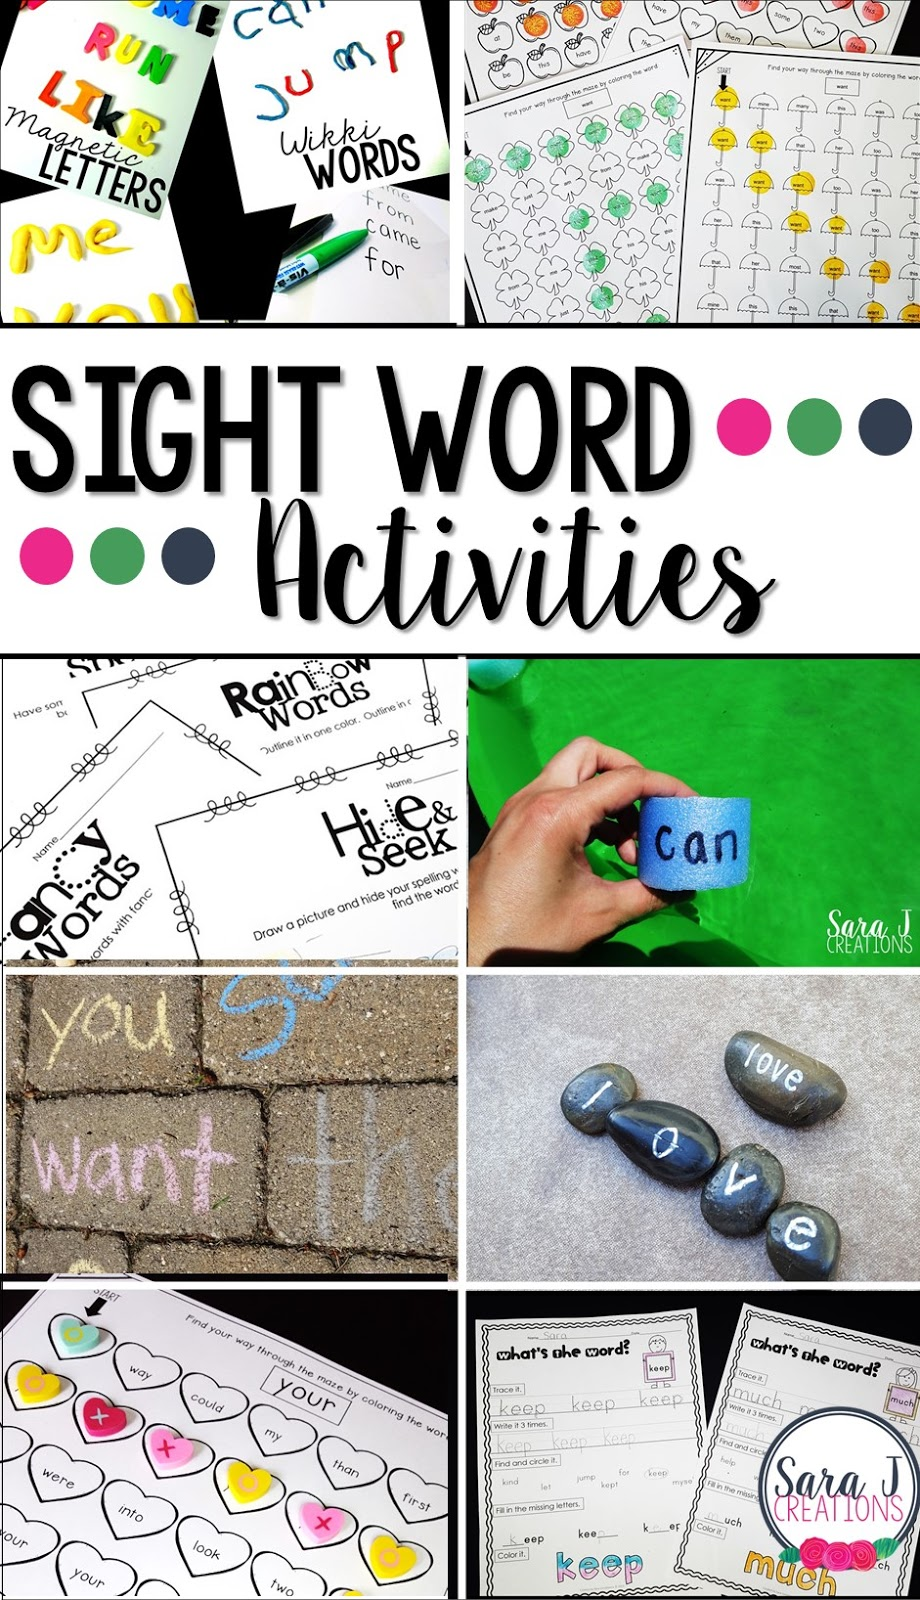 Love this list of sight word activities for teaching and practicing sight words. A good mix of printables and hands on activities. This is awesome for kindergarten, first grade and second grade.